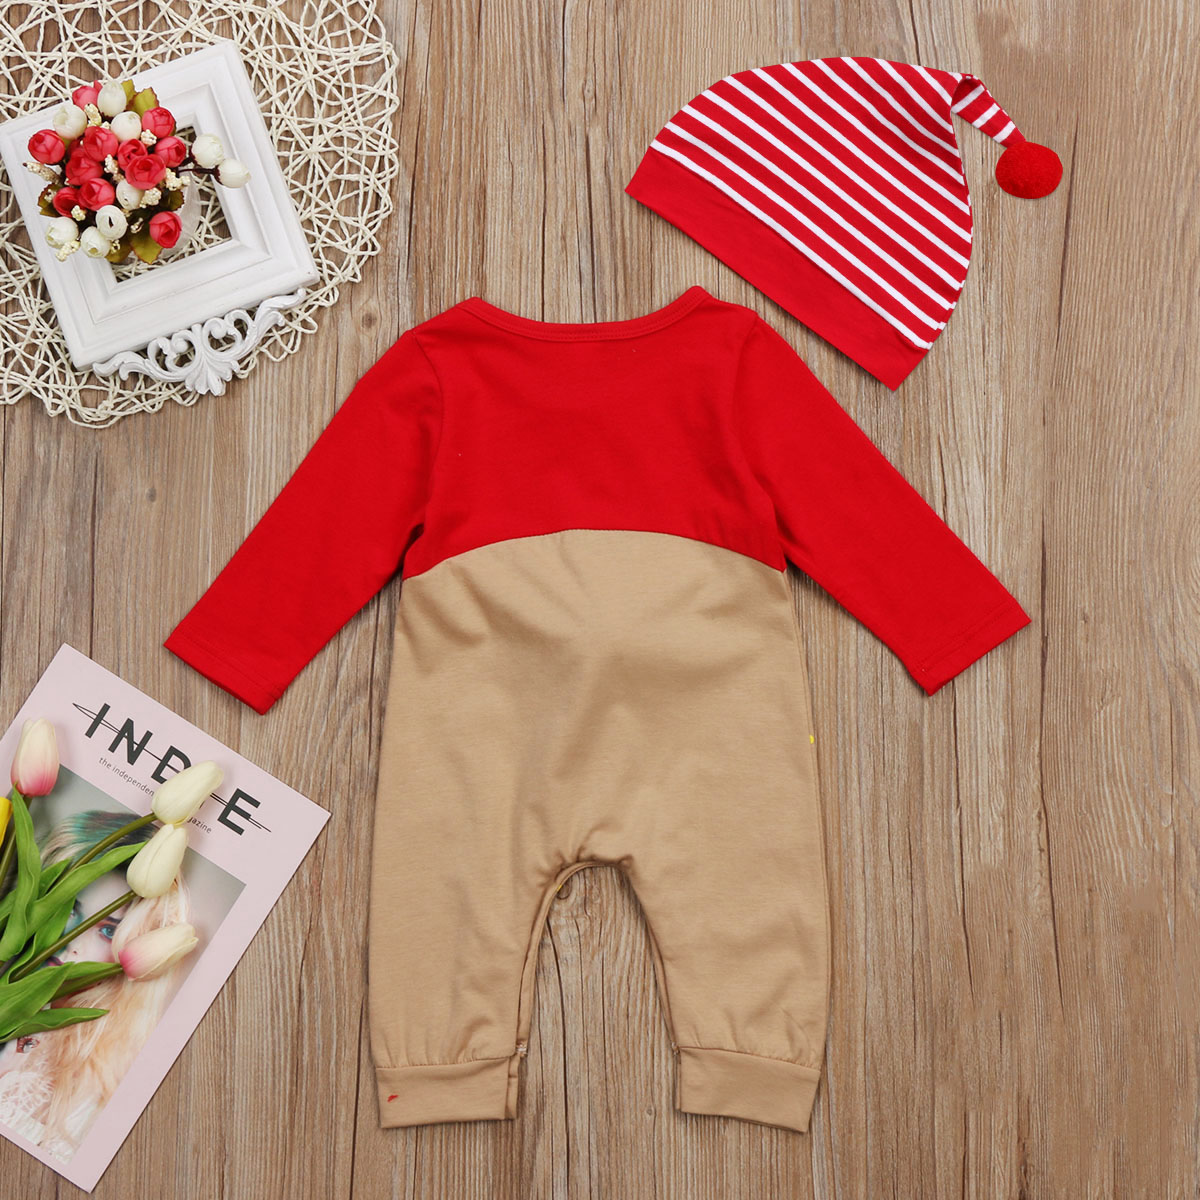 HTB1TuG5ai 1gK0jSZFqq6ApaXXaC Emmababy 2Pcs Newborn Baby Boys Girl Christmas Rompers Long Sleeve Deer Romper Jumpsuit Hat Sleepwear Party Costume Baby Clothes